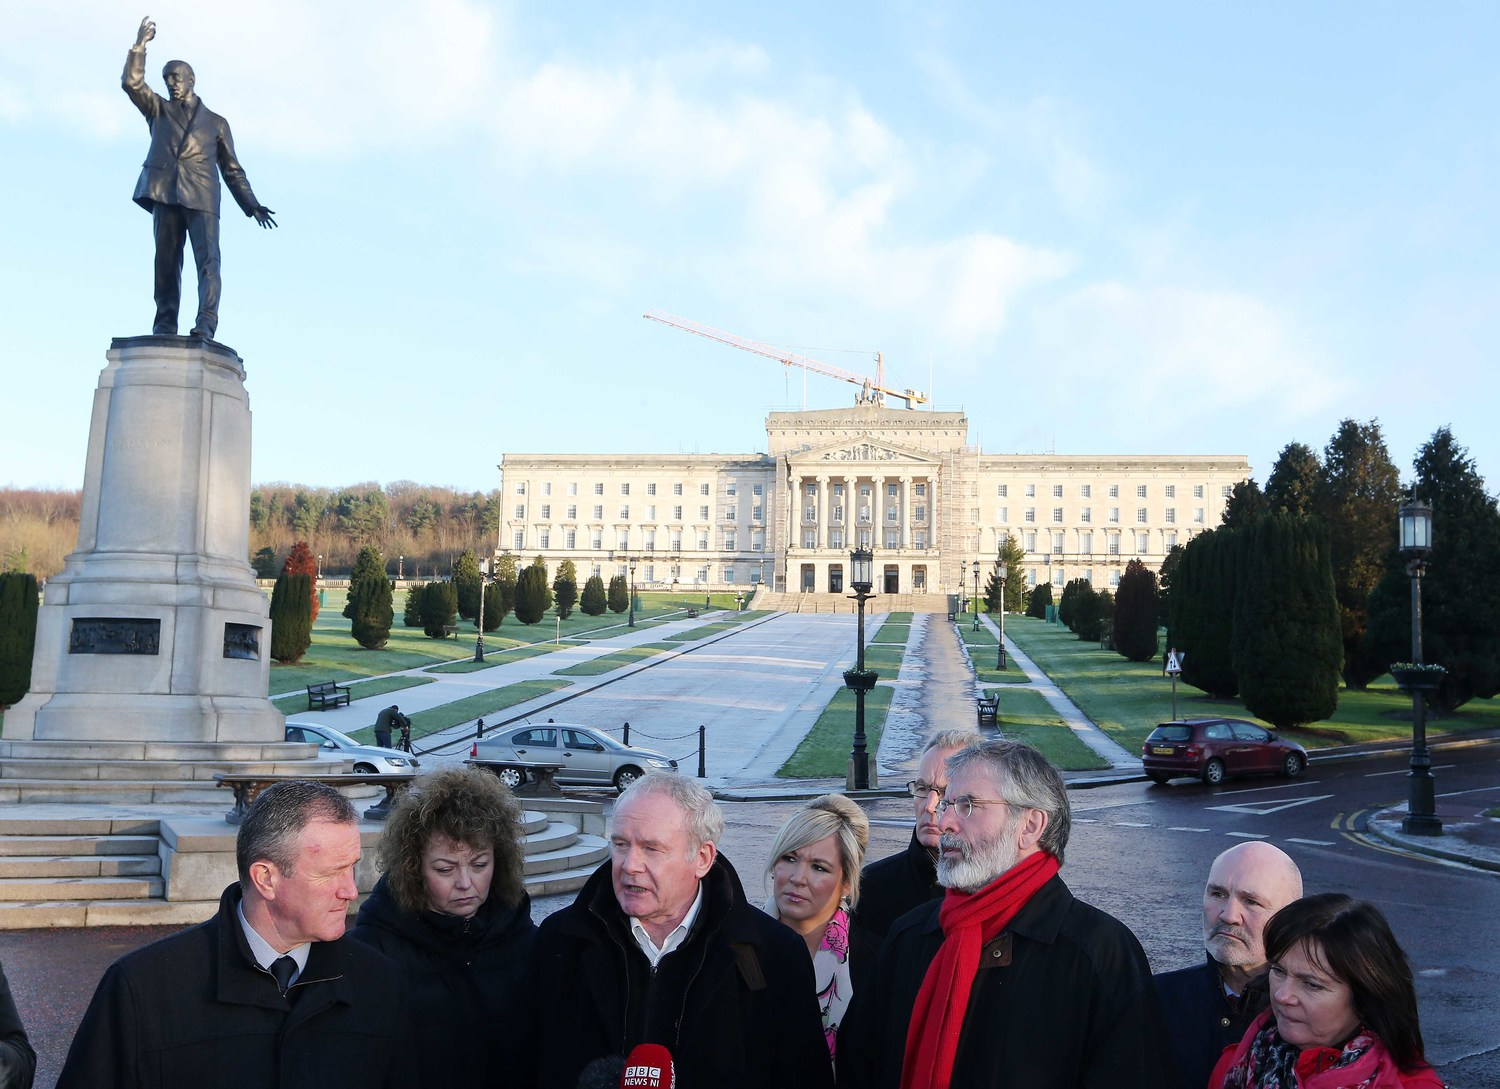 Sinn Féin representatives, including the late Martin McGuinness, holding a press conference next to Carson's statue in December 2014.